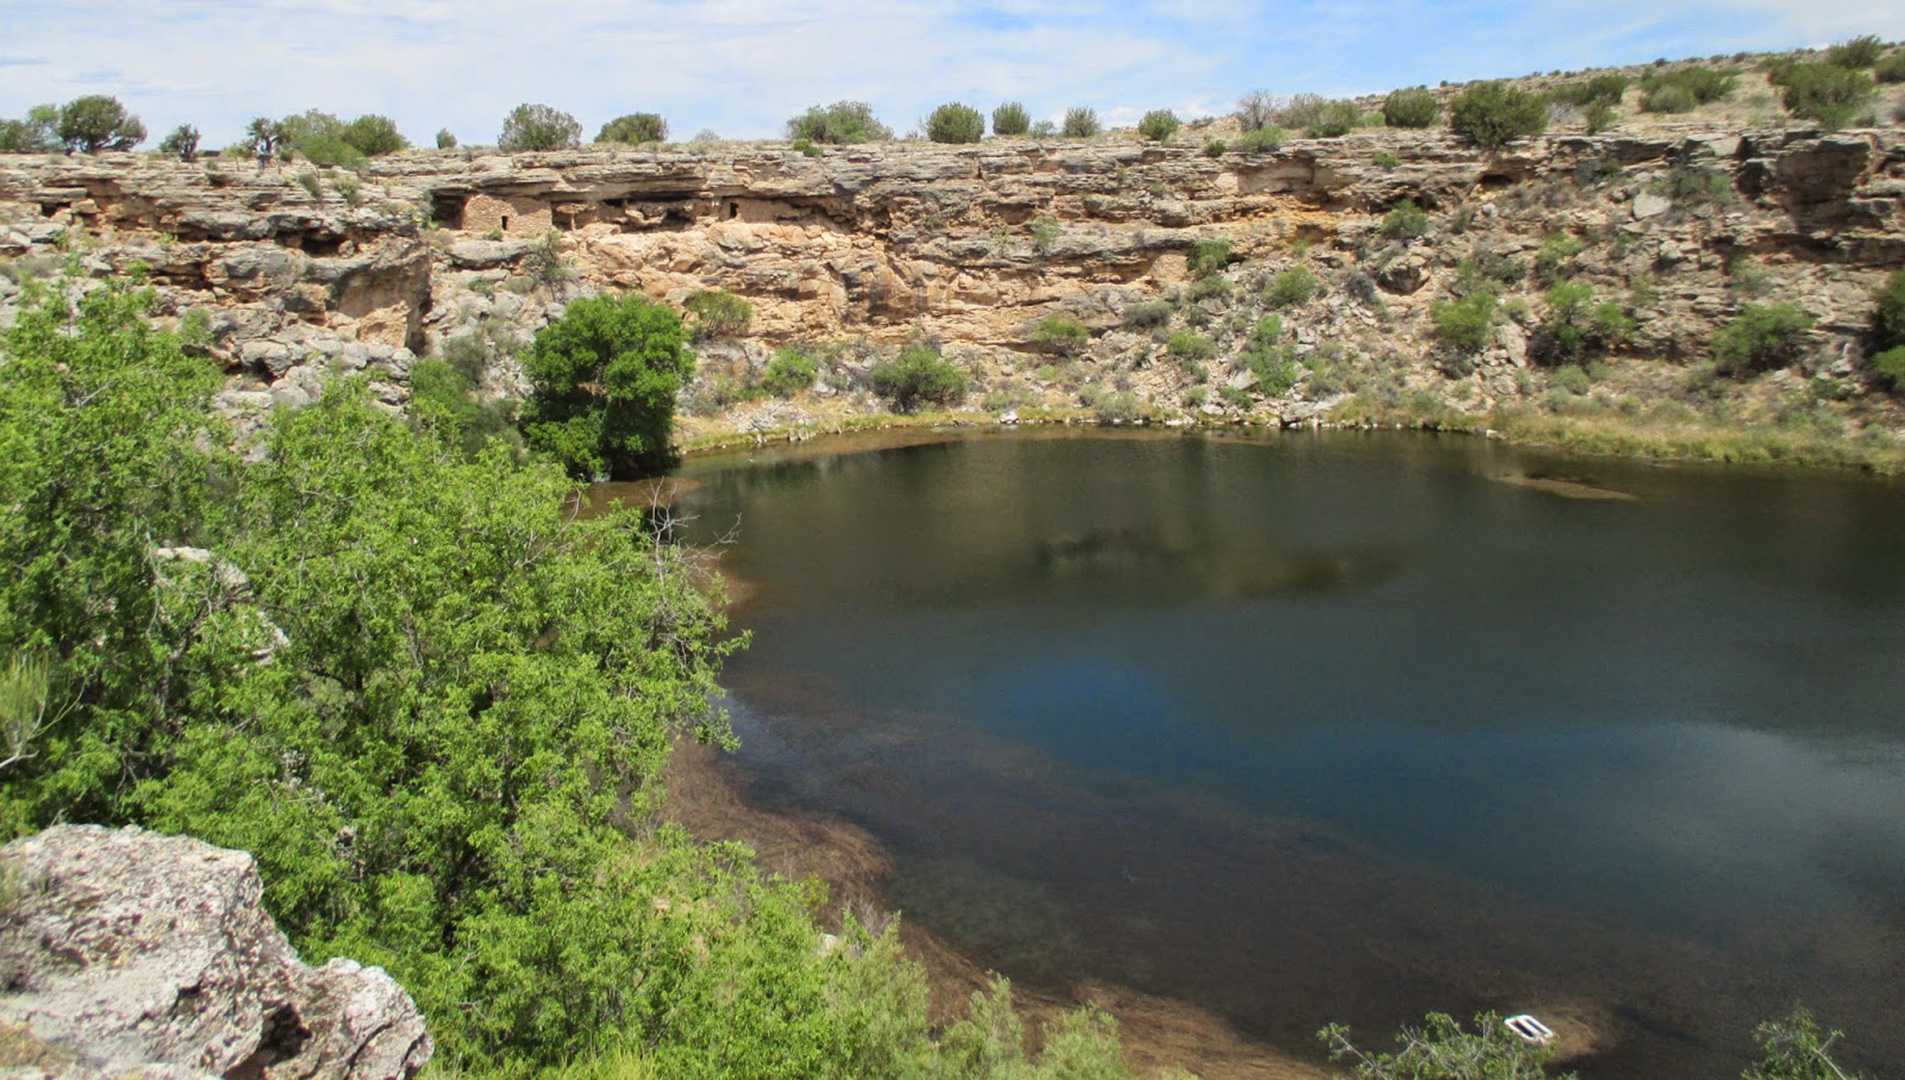 Ancient cliff dwelling is perched above the waters of an oasis desert sinkhole.